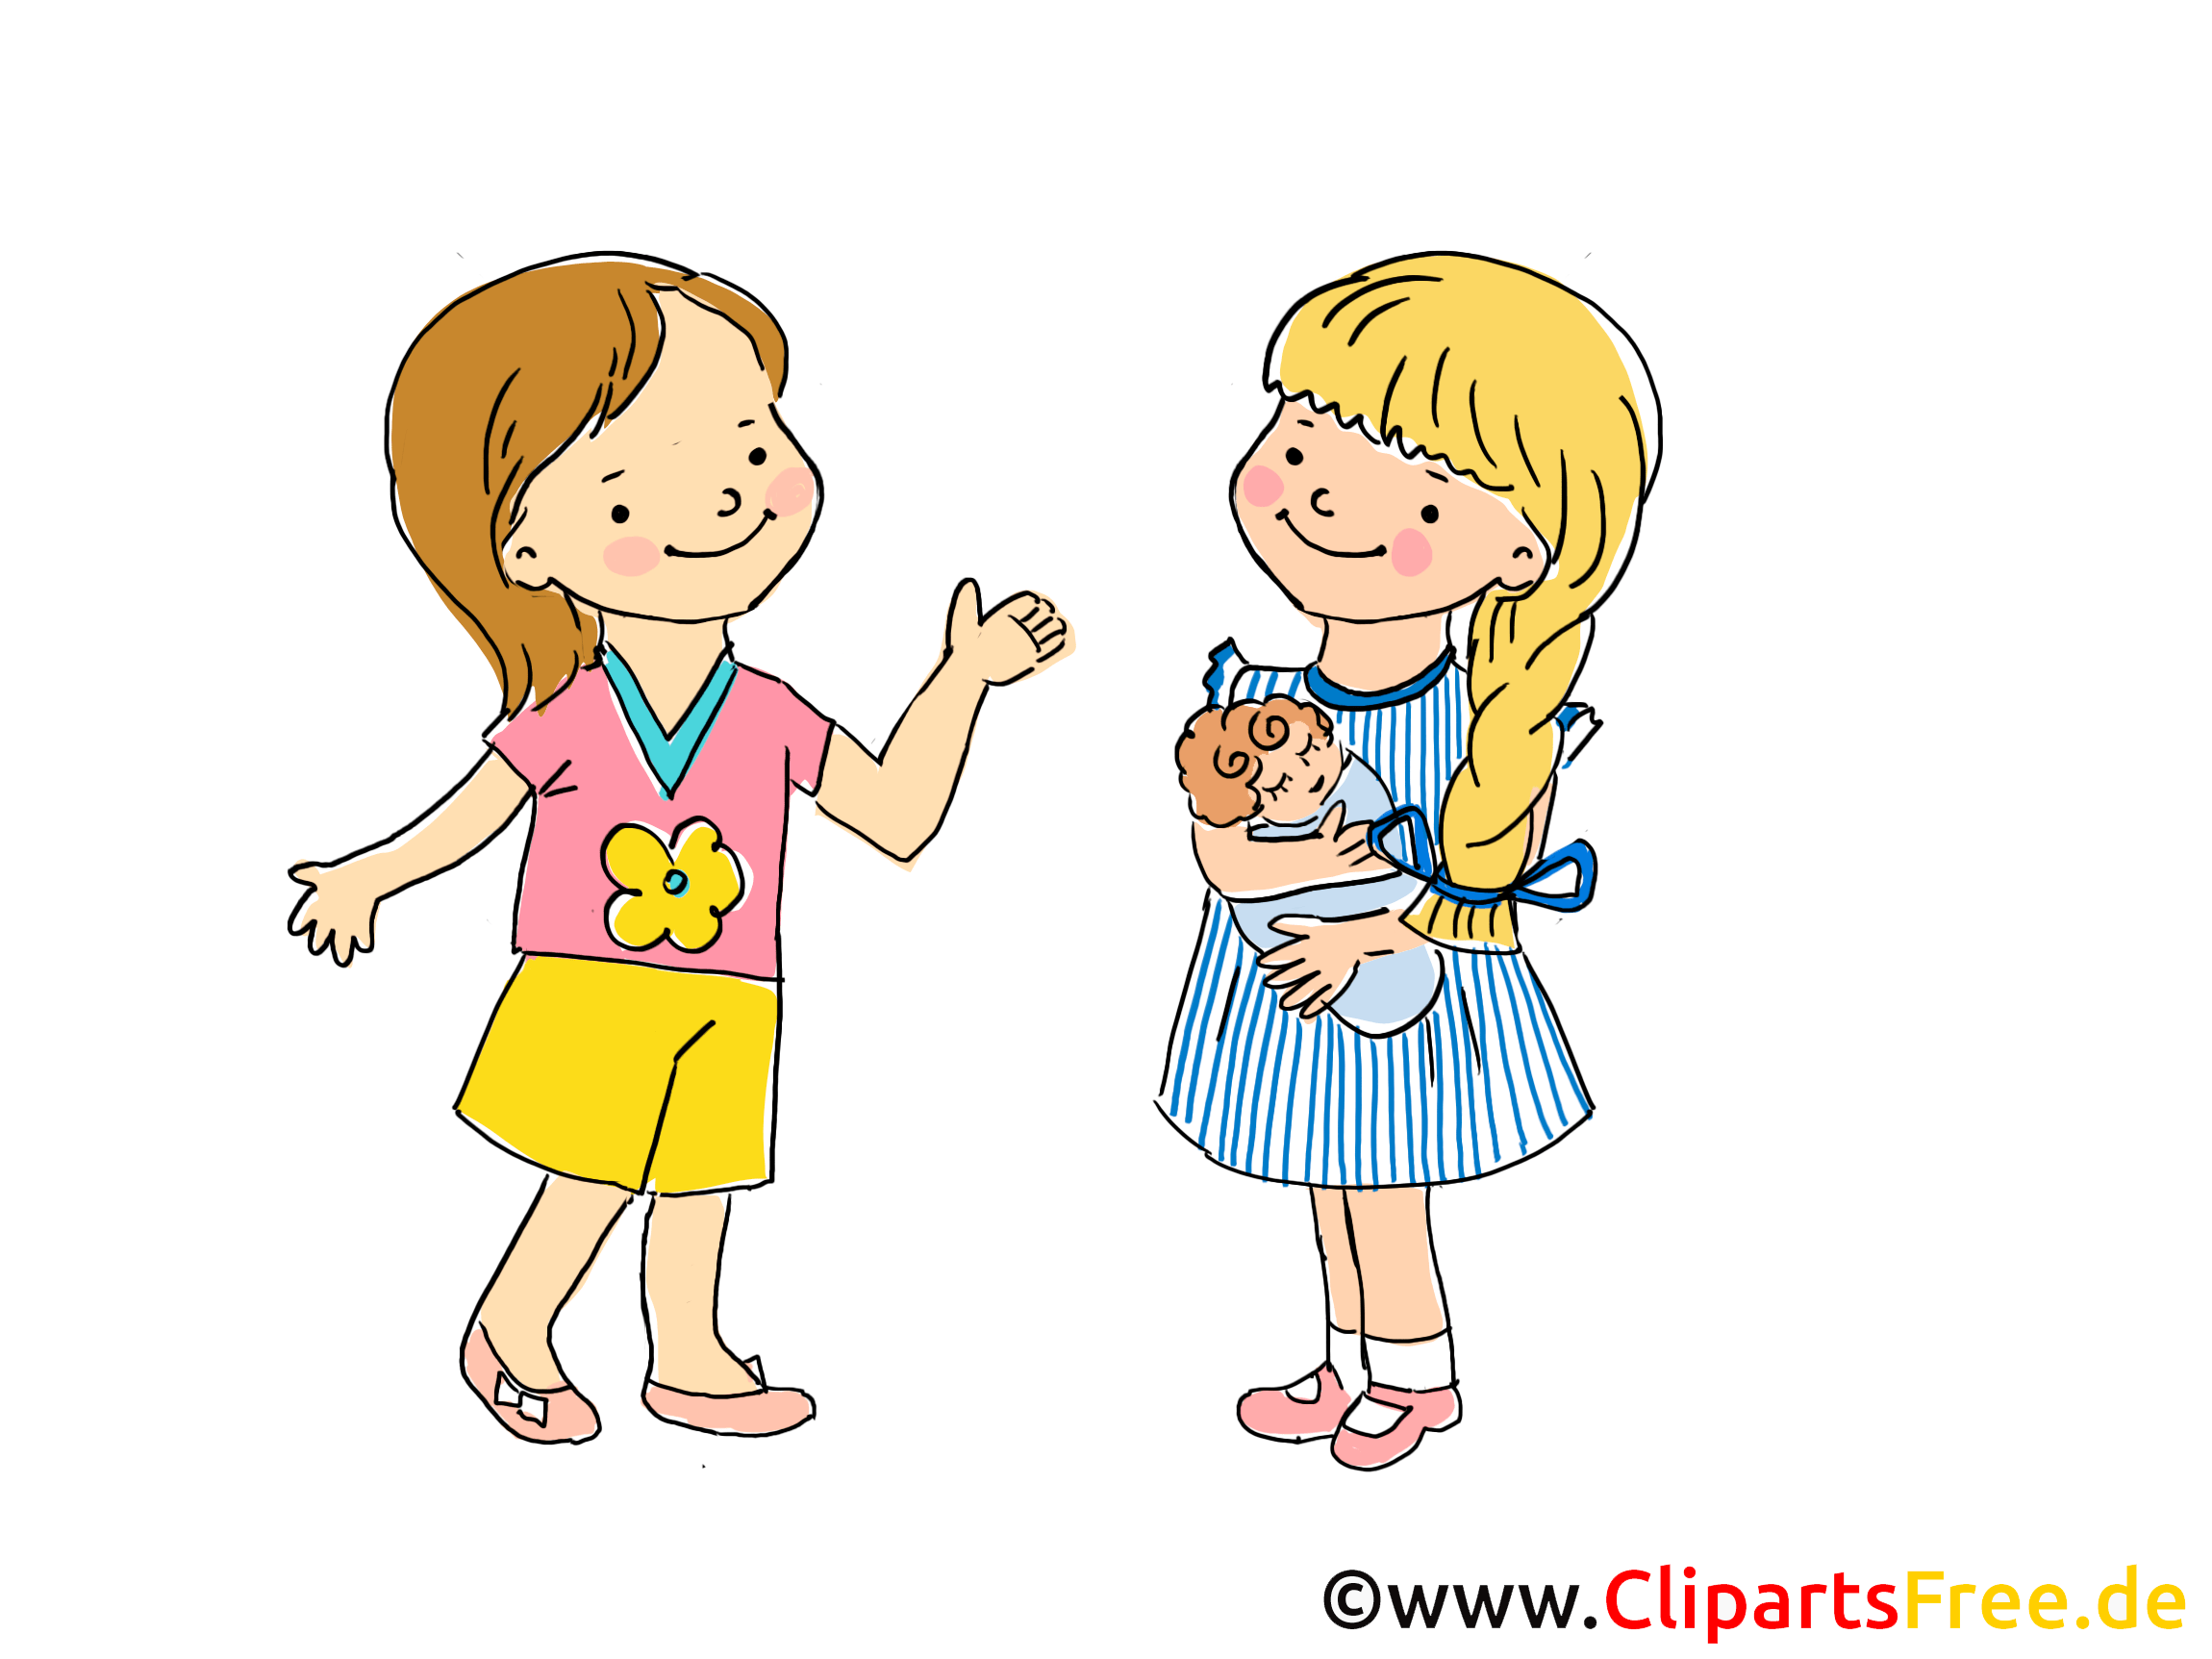 Kinder Cliparts Kinder Clipart 3 Clipart Station